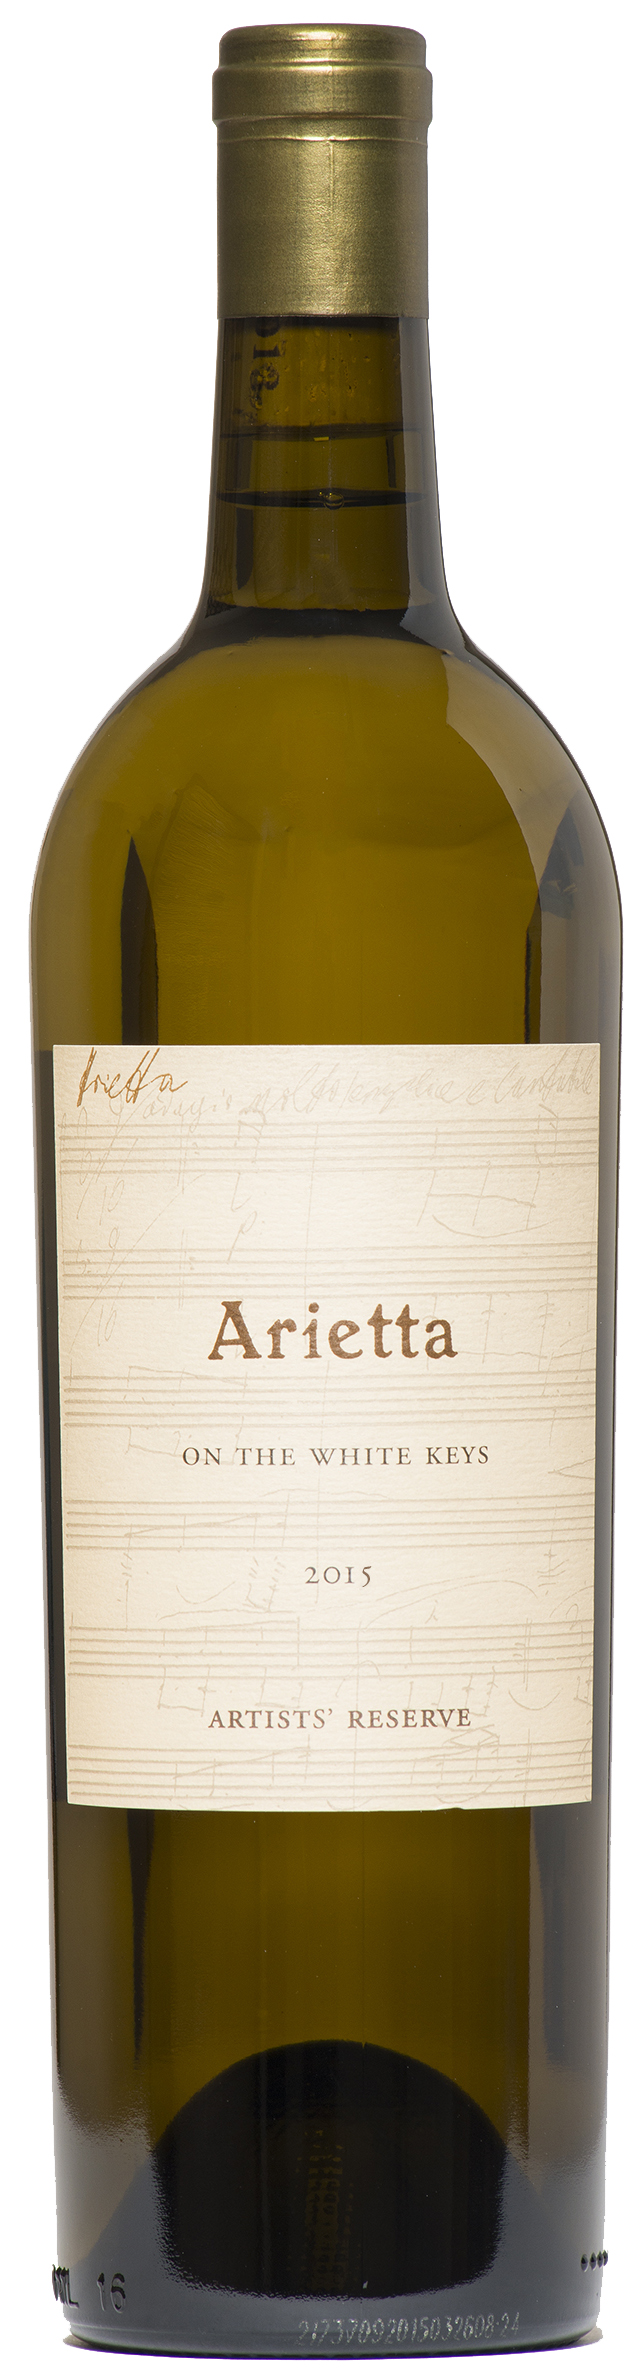 Arietta White Wine On the White Keys Artists Reserve 2015